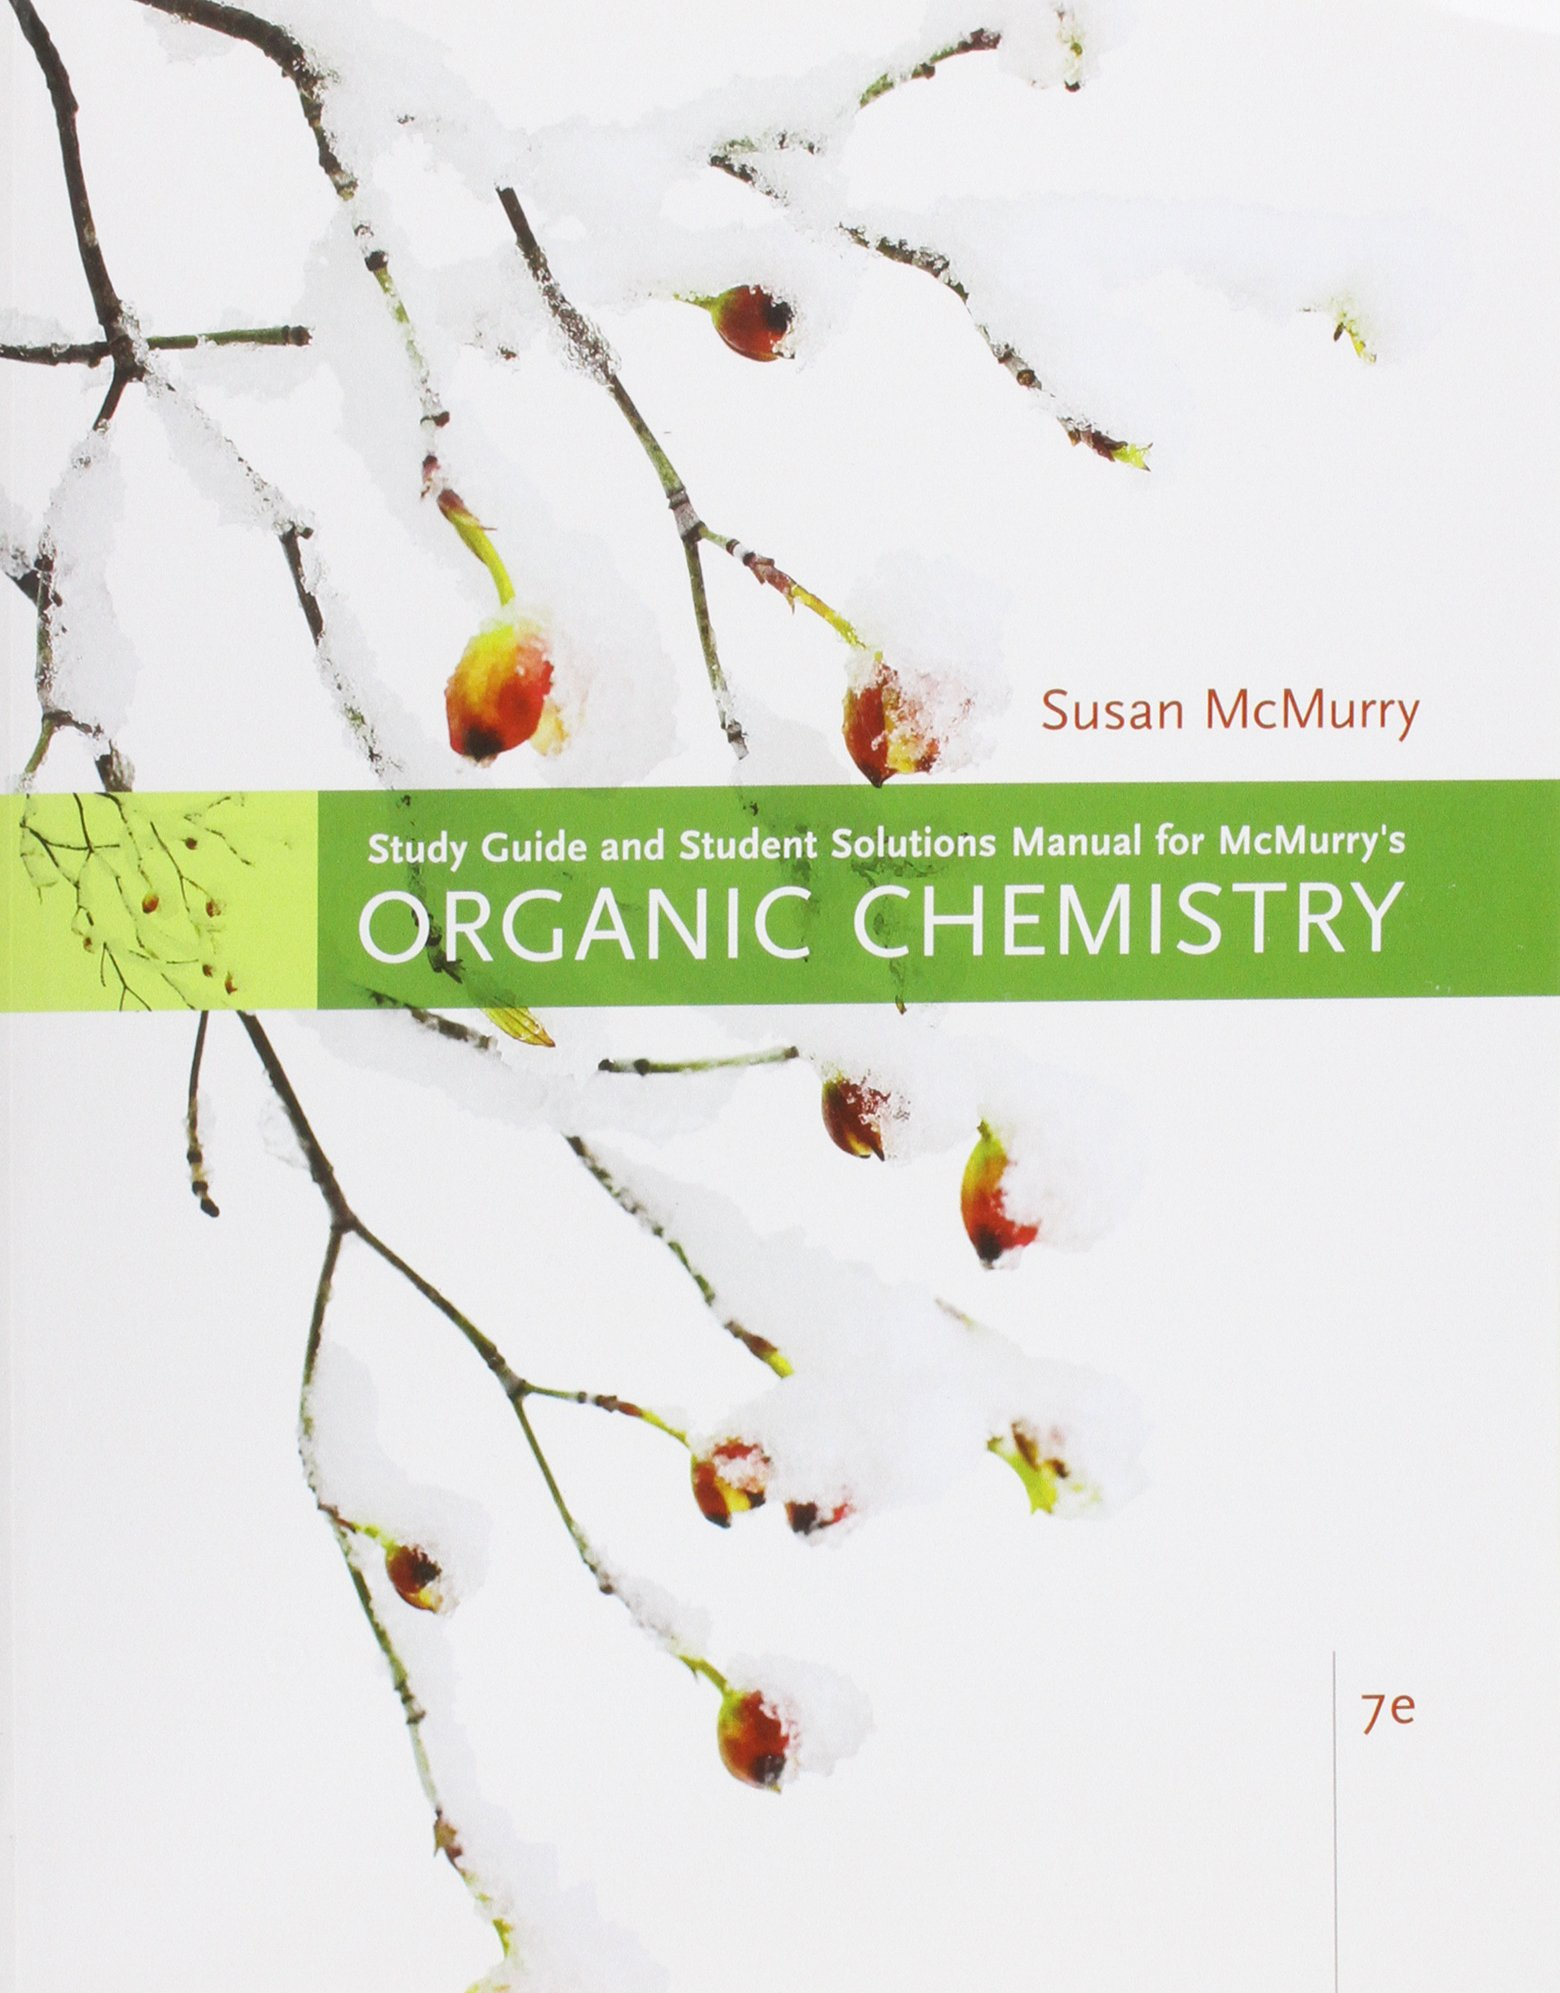 Study Guide with Solutions Manual for McMurry's Organic Chemistry, 7th:  John McMurry: 9780495112686: Books - Amazon.ca